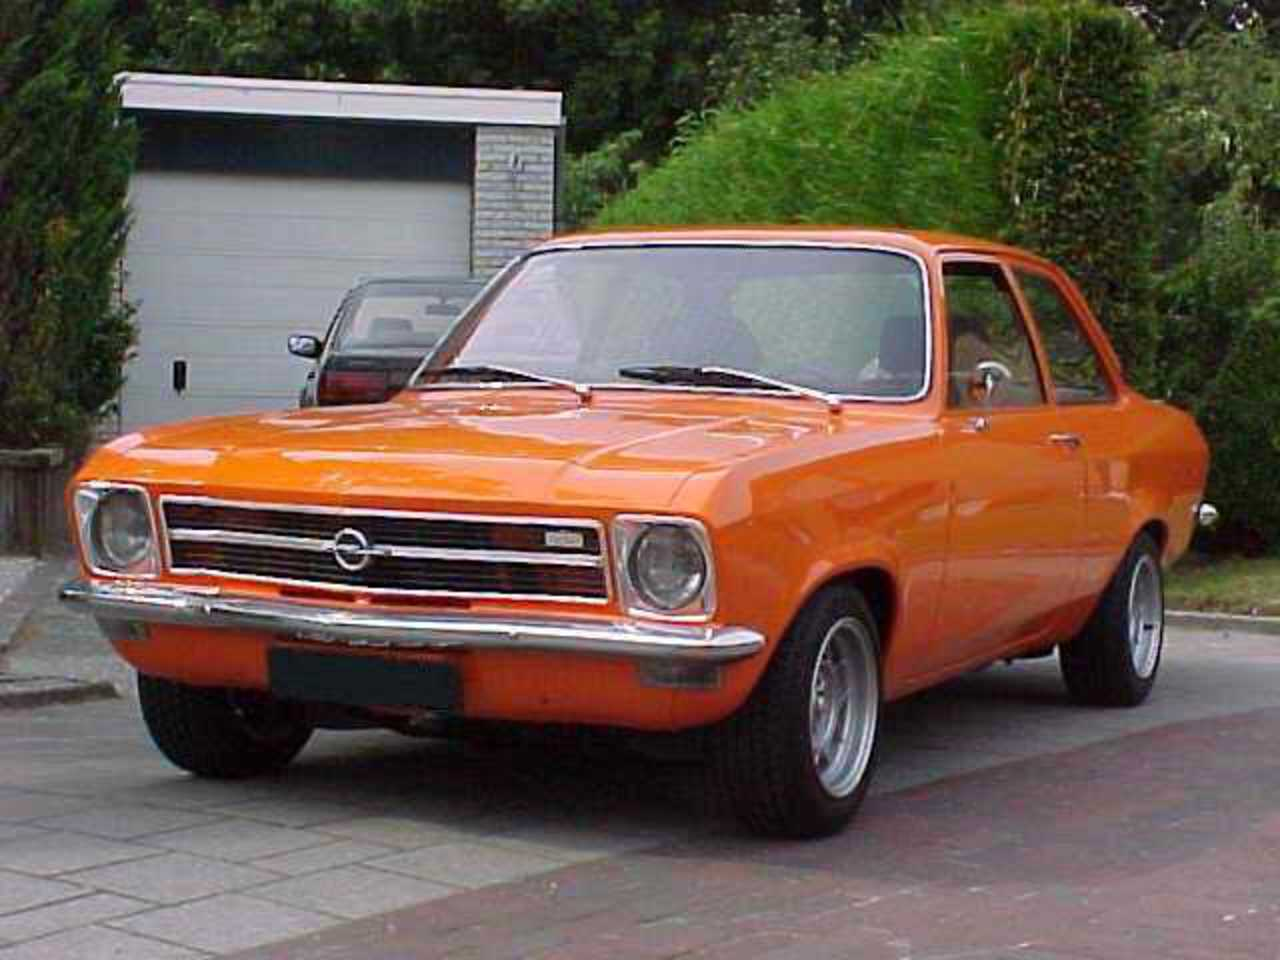 Opel ascona 1.6 s (460 comments) Views 11585 Rating 13